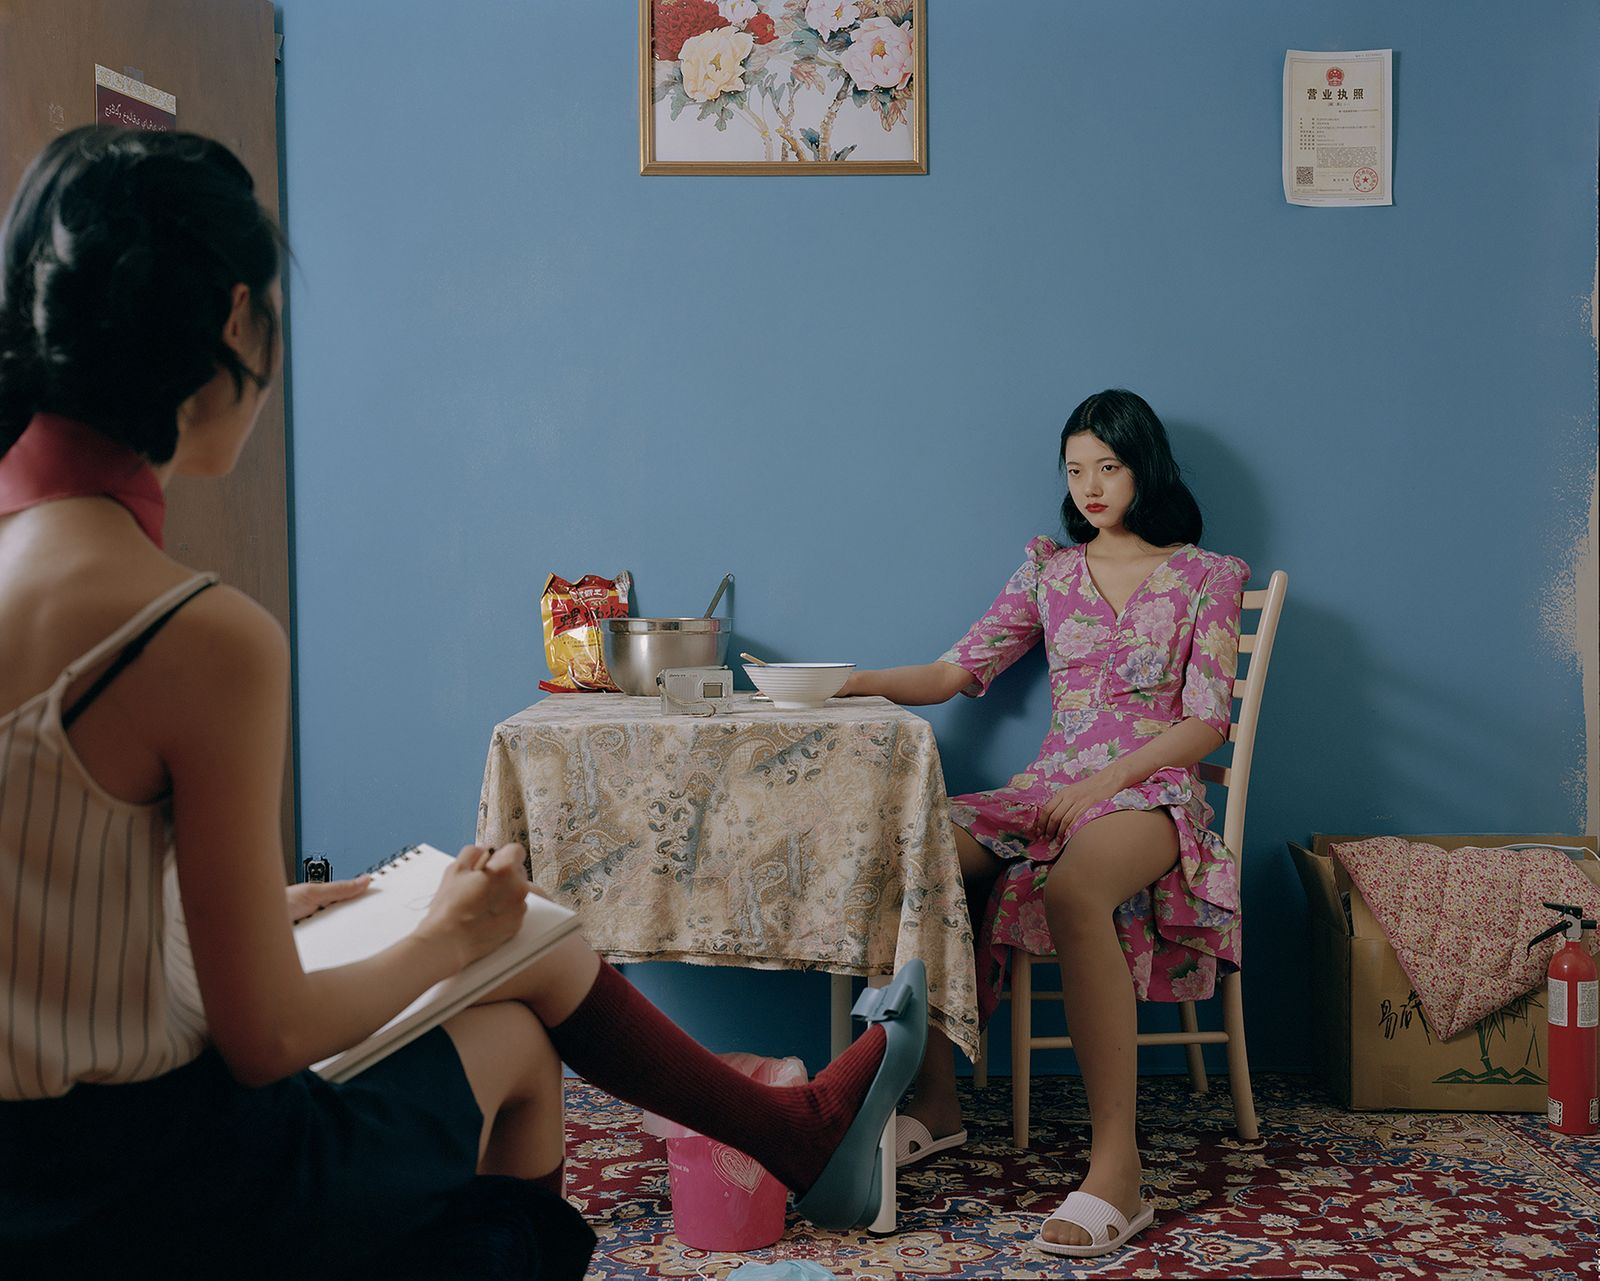 Guoman Liao, Winner, 2nd Place, Single Image, LensCulture Art Photography Awards 2021